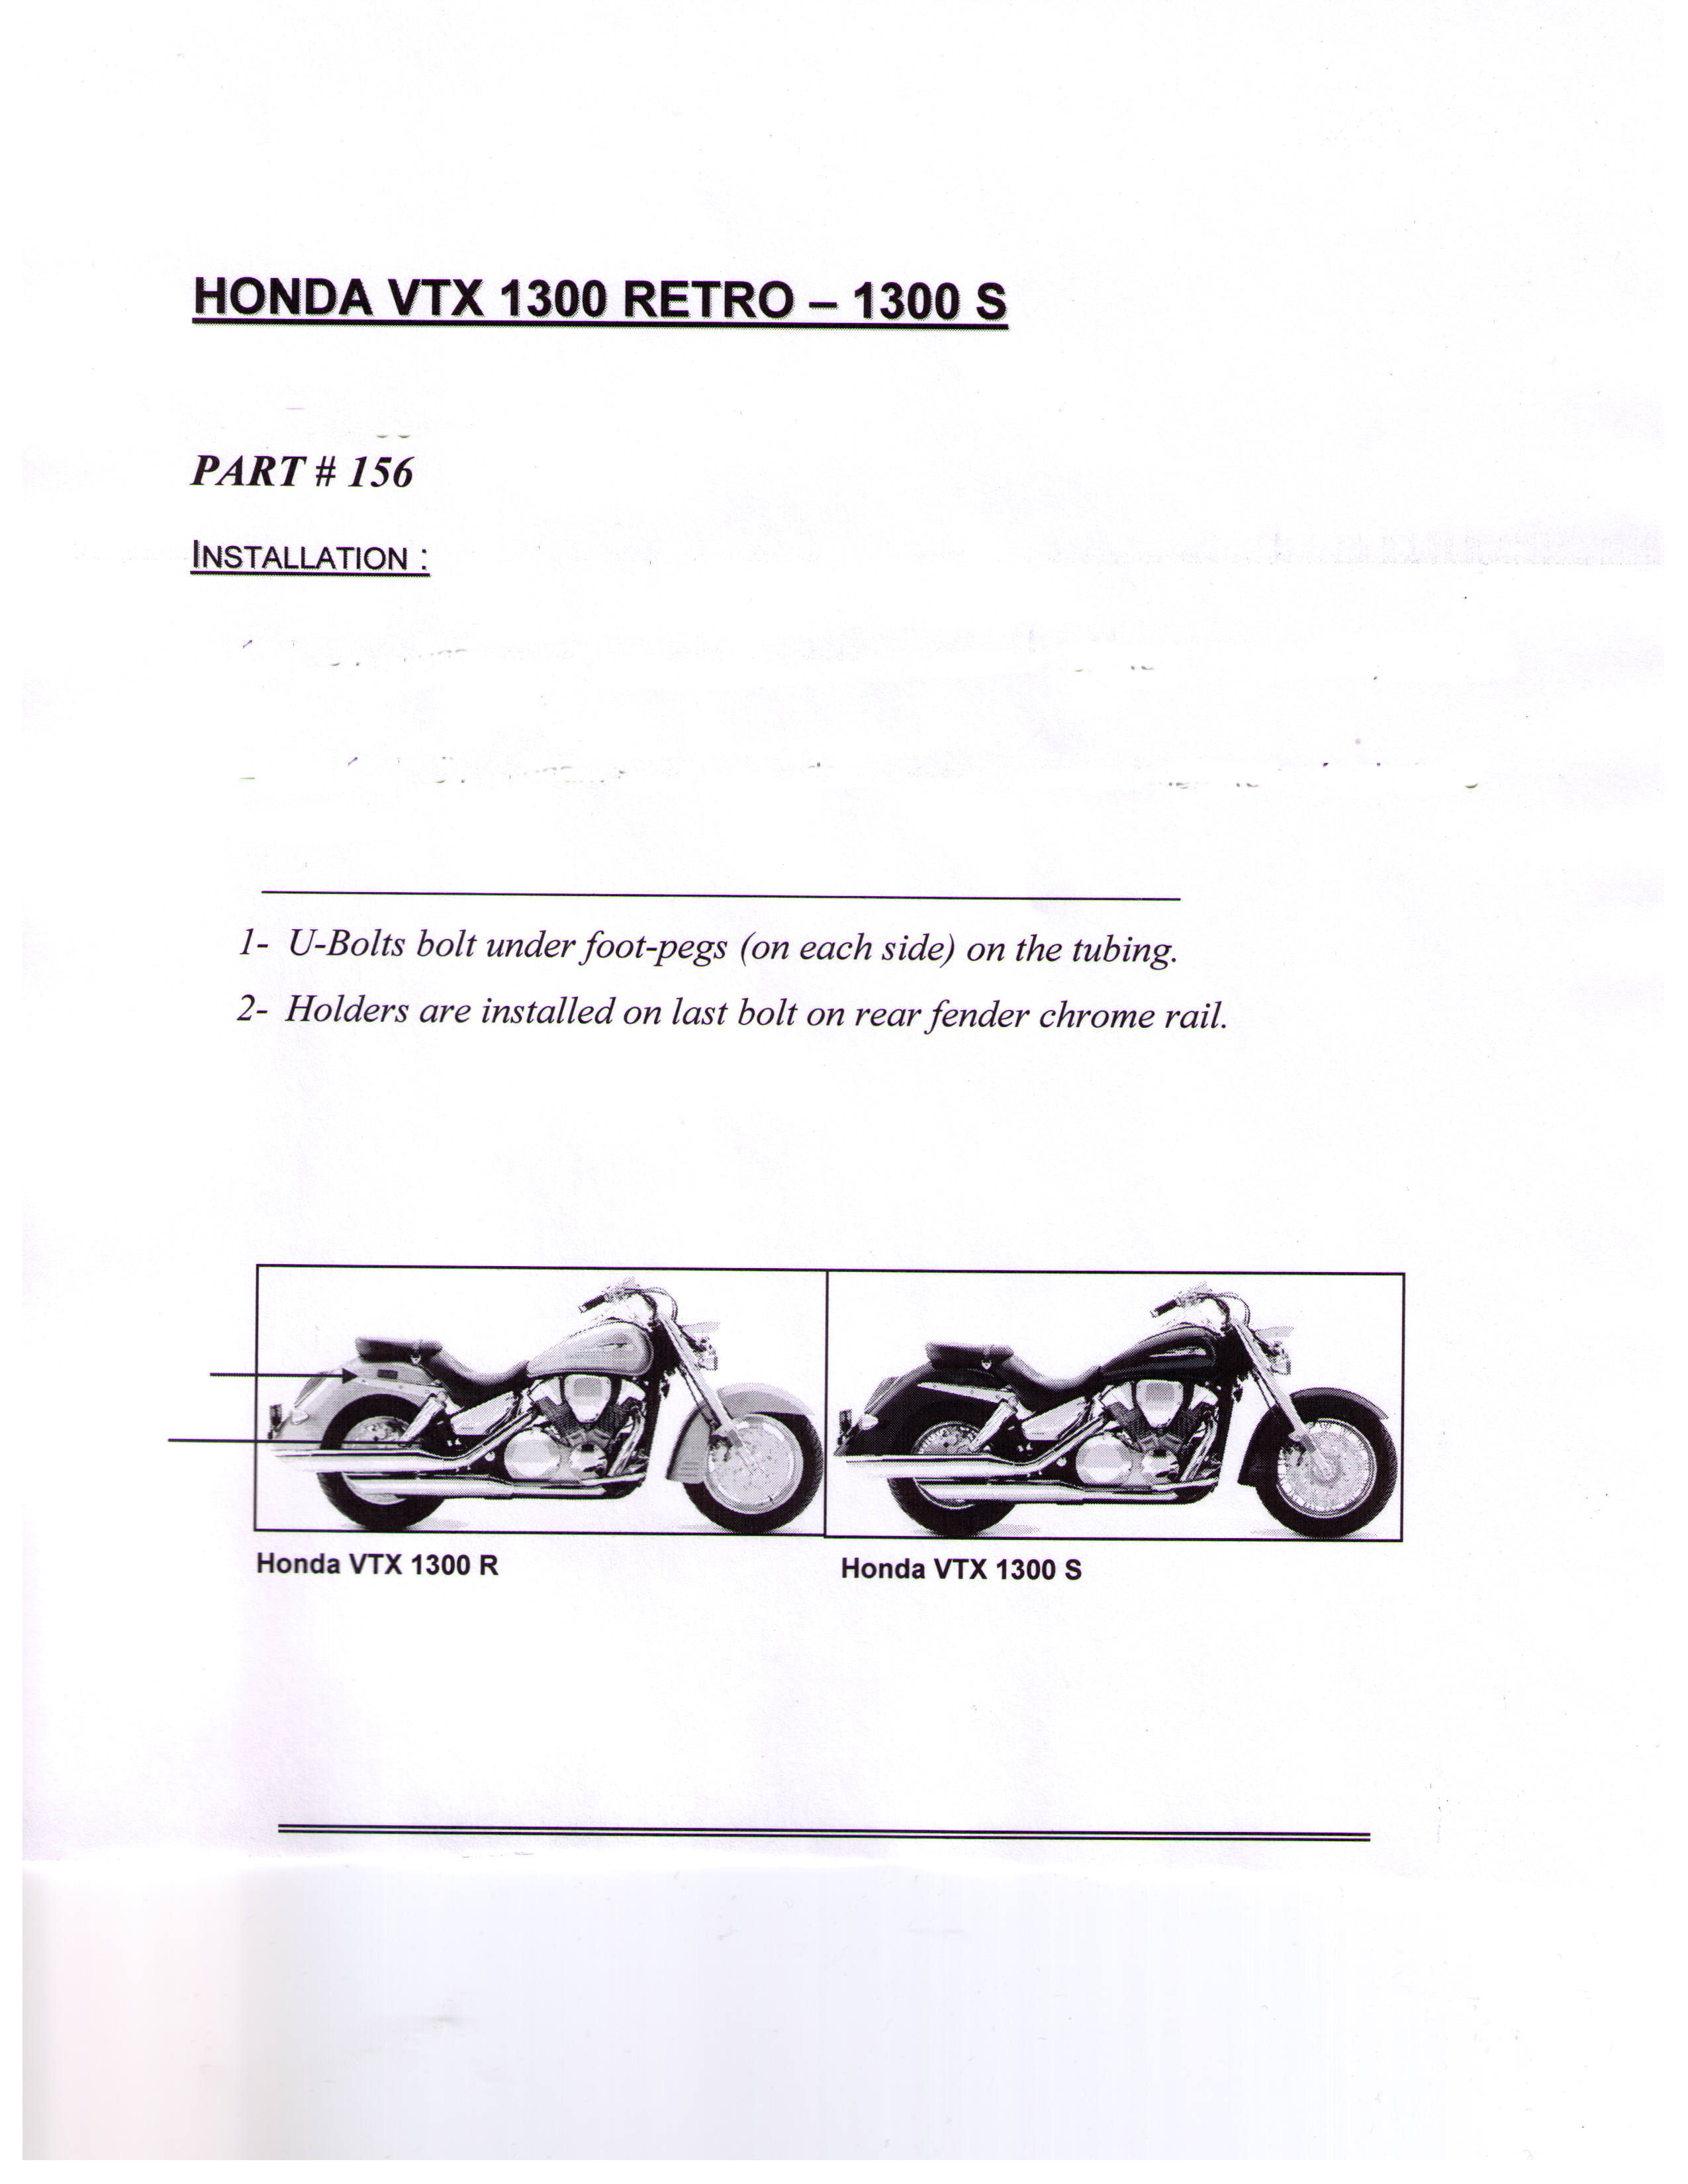 Installation Instructions Honda VTX 1300 Retro